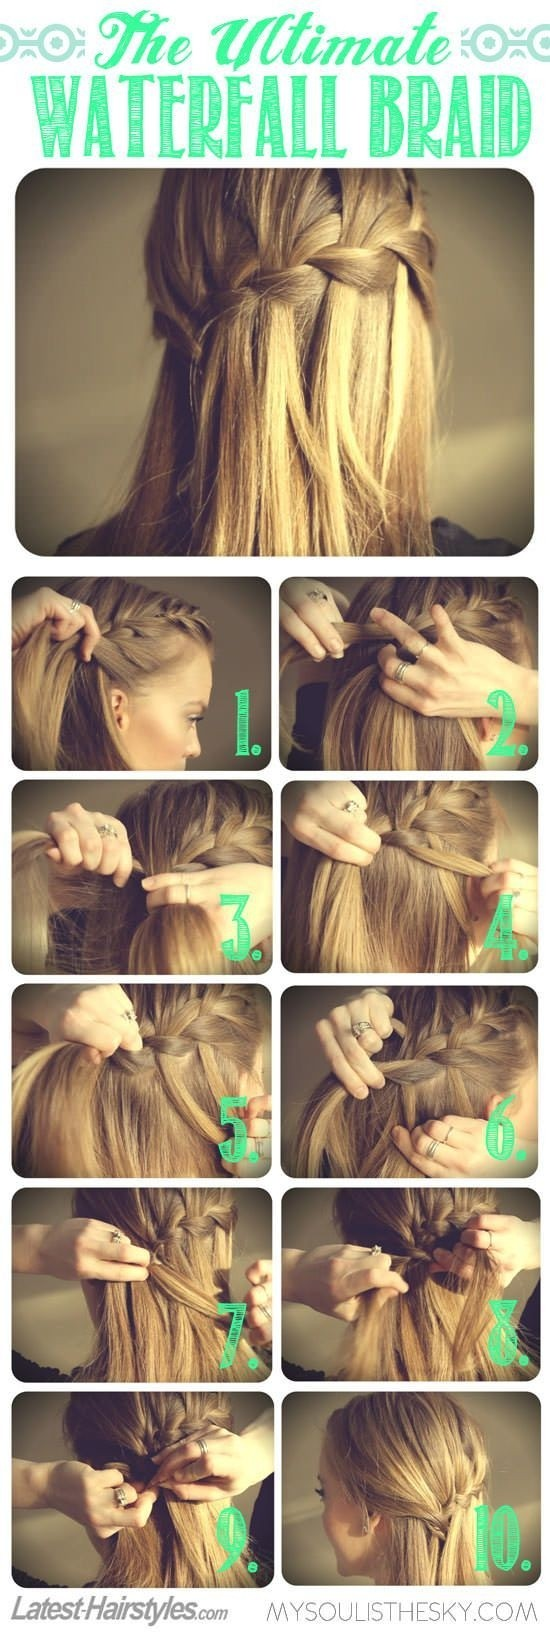 How to Waterfall Braid Hair Step By Step